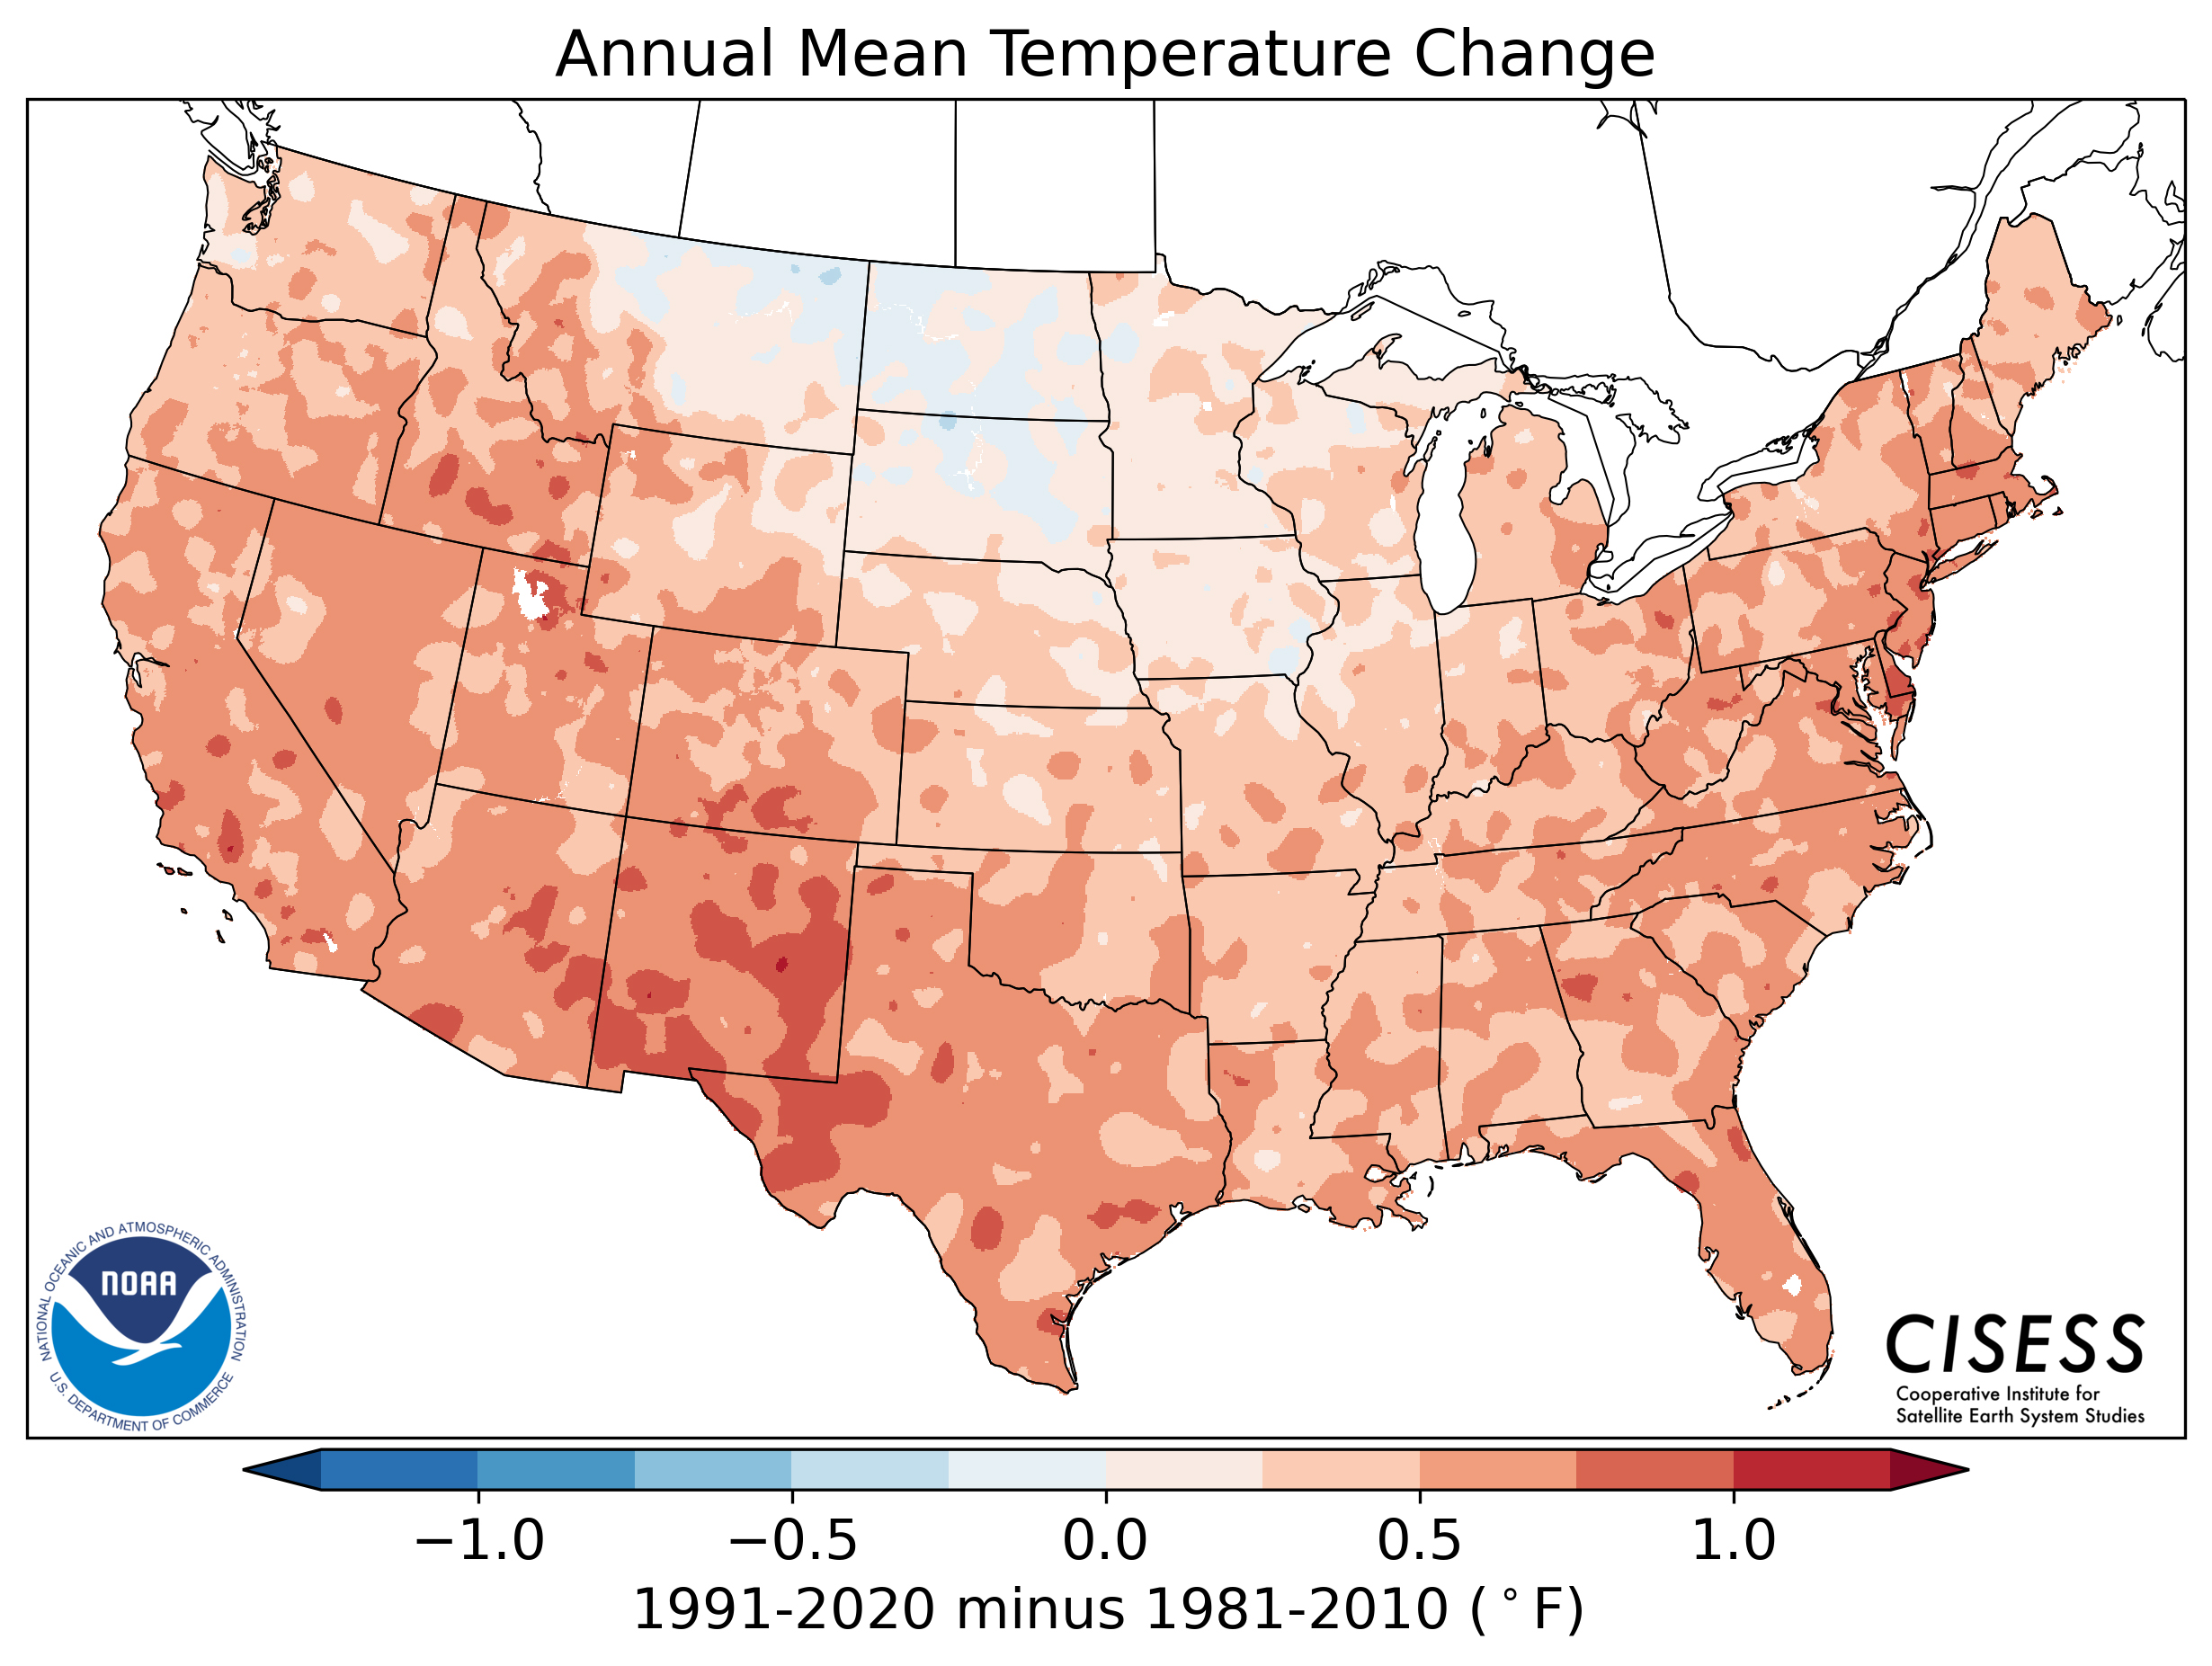 Most of the U.S. was warmer, and the eastern two-thirds of the contiguous U.S. was wetter, from 1991–2020 than the previous normals period, 1981–2010. With 20 years of overlap between the current normals and the previous iteration (1991–2010), annual changes between these two data sets were somewhat muted compared to trends over the same period. Monthly and seasonal changes are more dynamic. For example, the current normals for the northern-central U.S. are cooler in the spring, while much of the Southeast is now warmer in October, cooler in November and warmer again in December. Atmospheric circulation dynamics and surface feedbacks result in substantial differences from month to month and region to region.